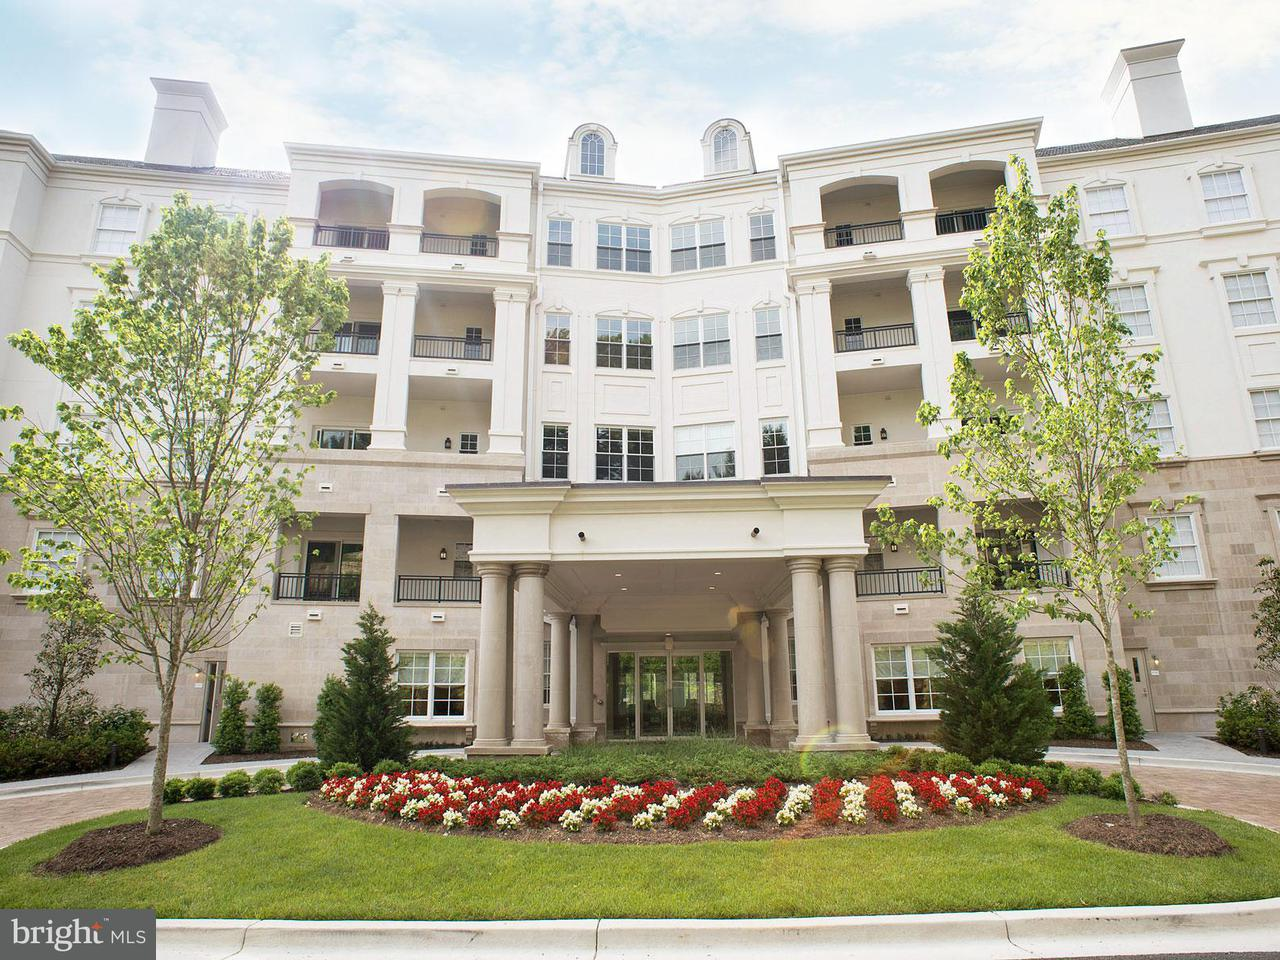 Condominium for Sale at 8111 River Rd #121 8111 River Rd #121 Bethesda, Maryland 20817 United States